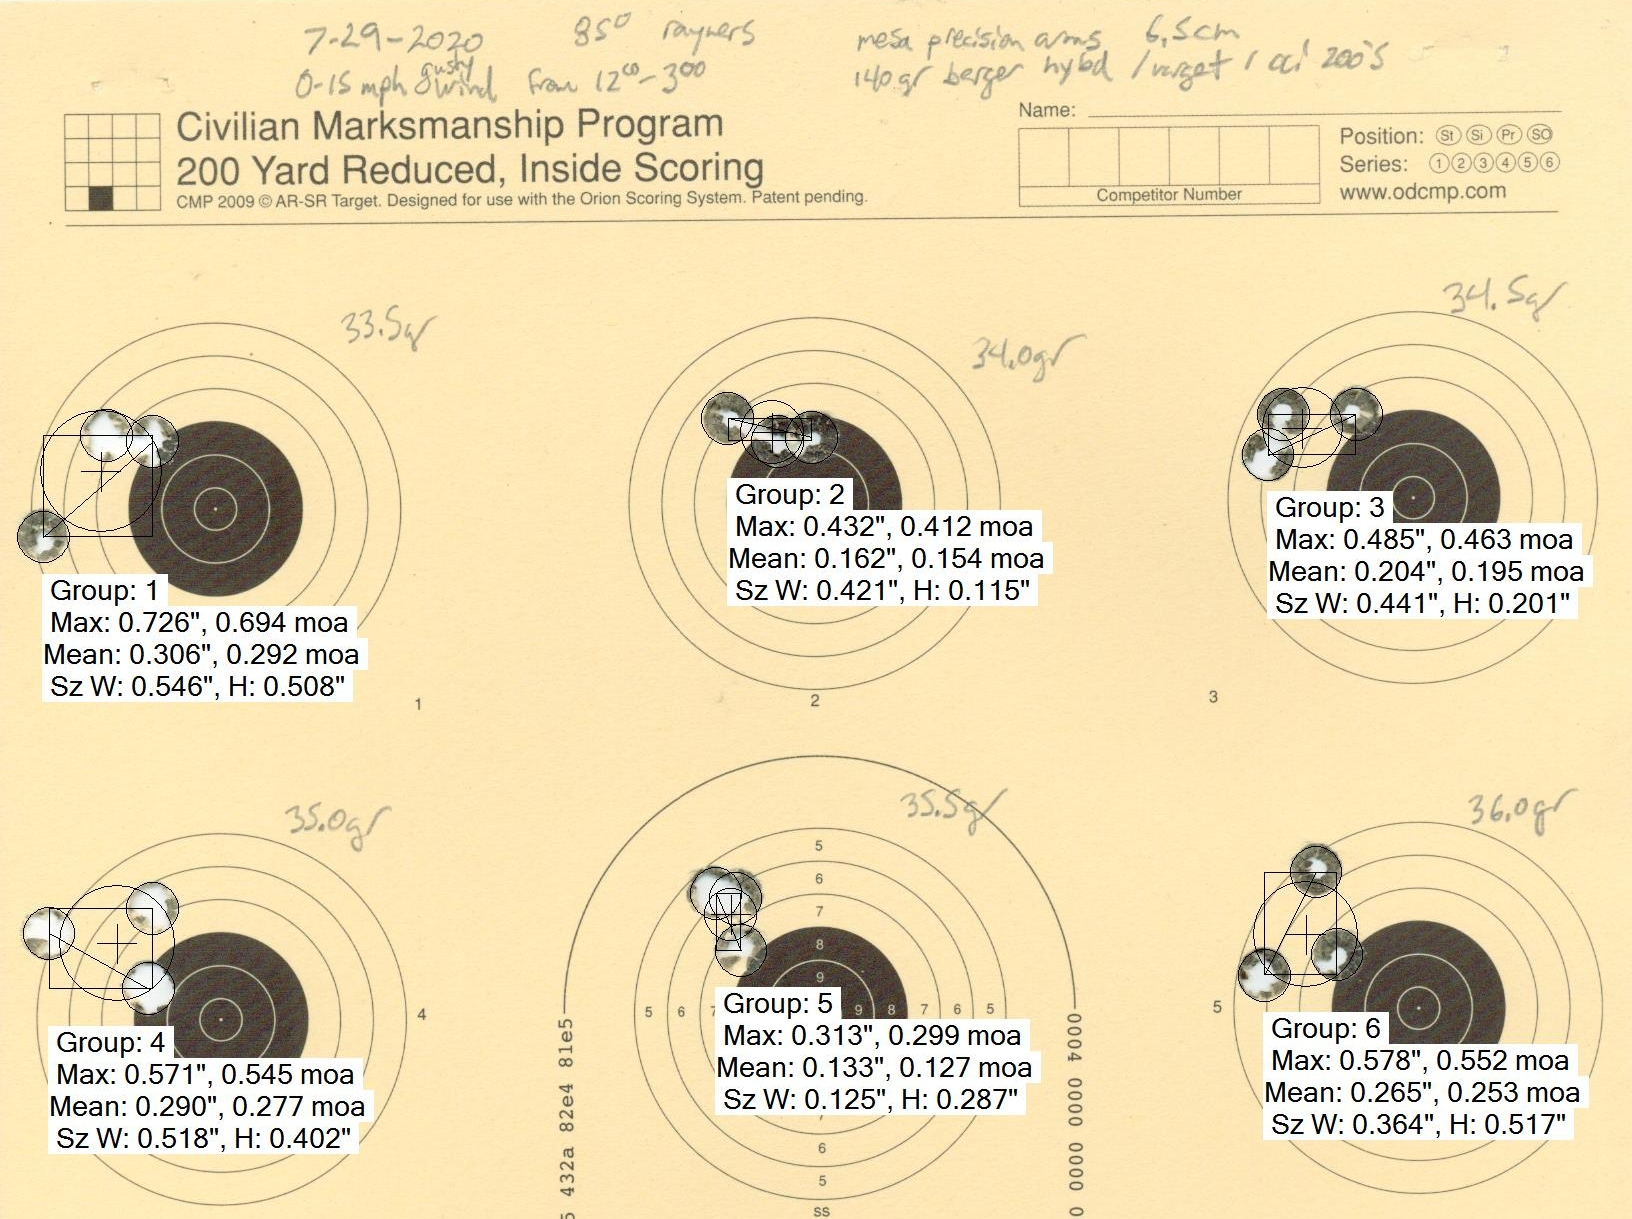 Proof Barreled Mesa Precison Arms 6.5CM 140gr Berger Hybrid charge weight stepping load development target